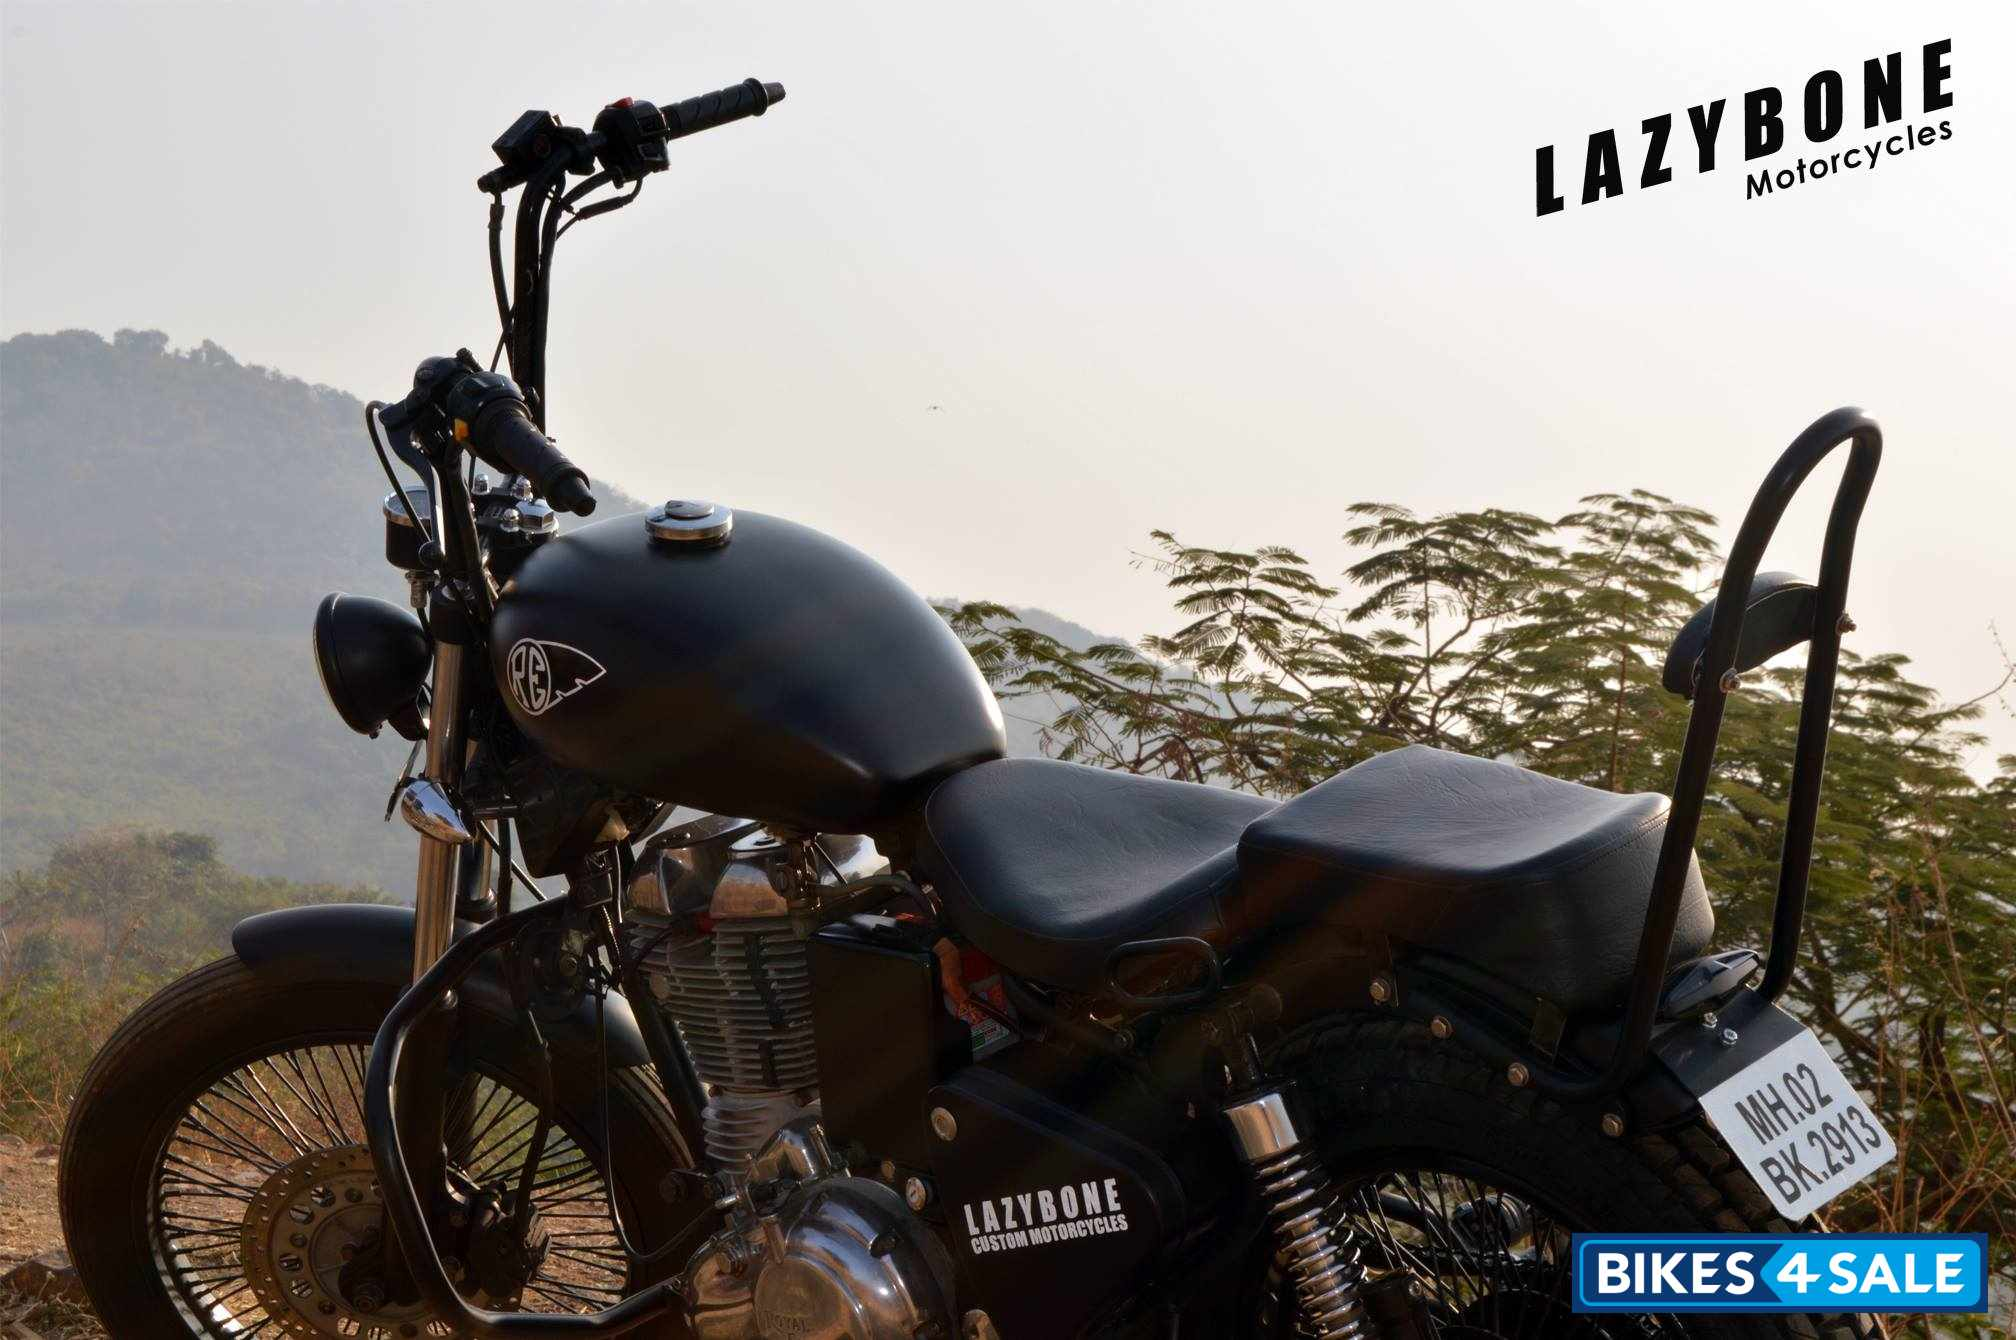 Lazybone Motorcycles